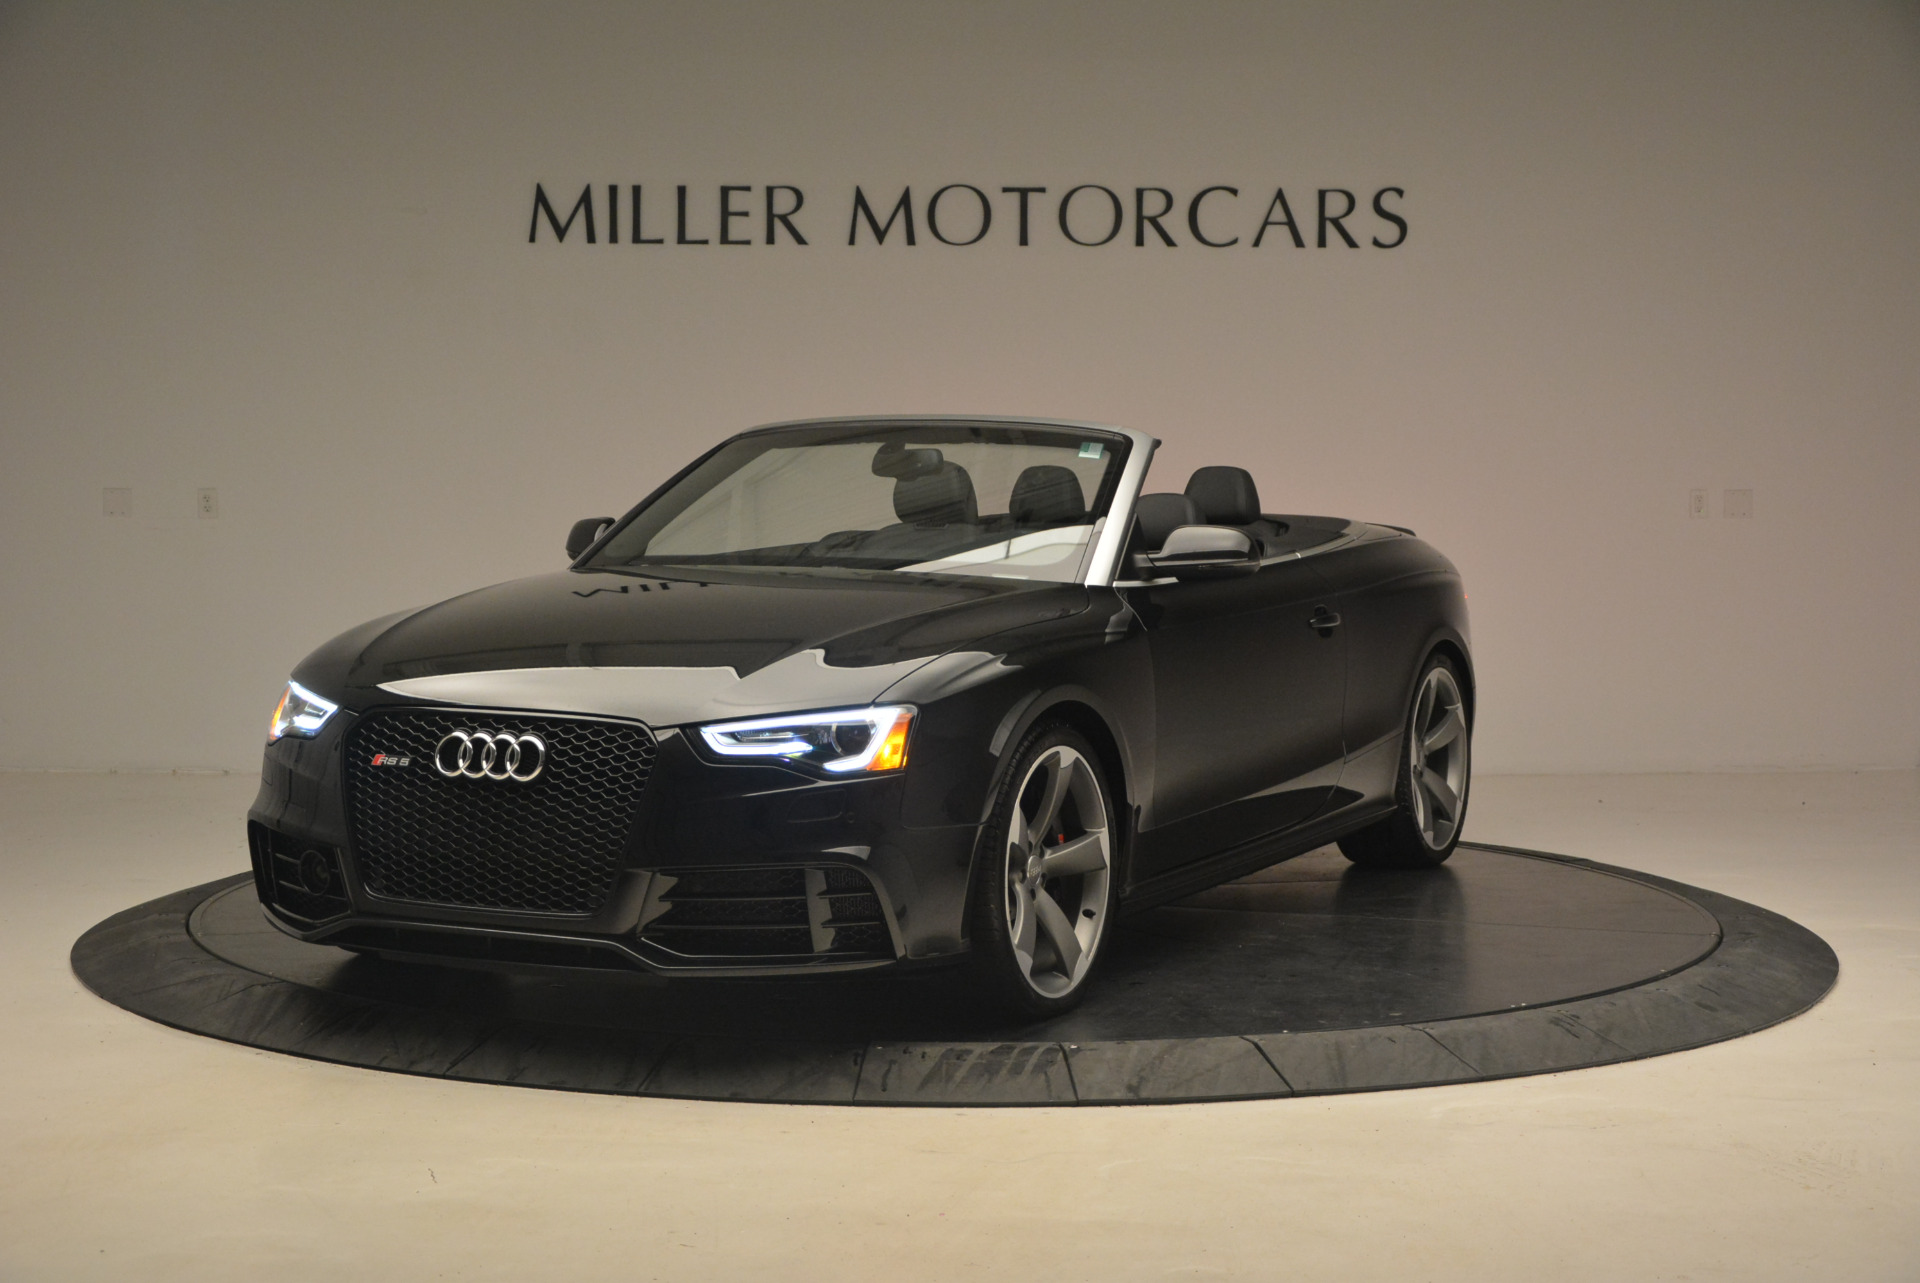 Used 2014 Audi RS 5 quattro for sale Sold at Pagani of Greenwich in Greenwich CT 06830 1